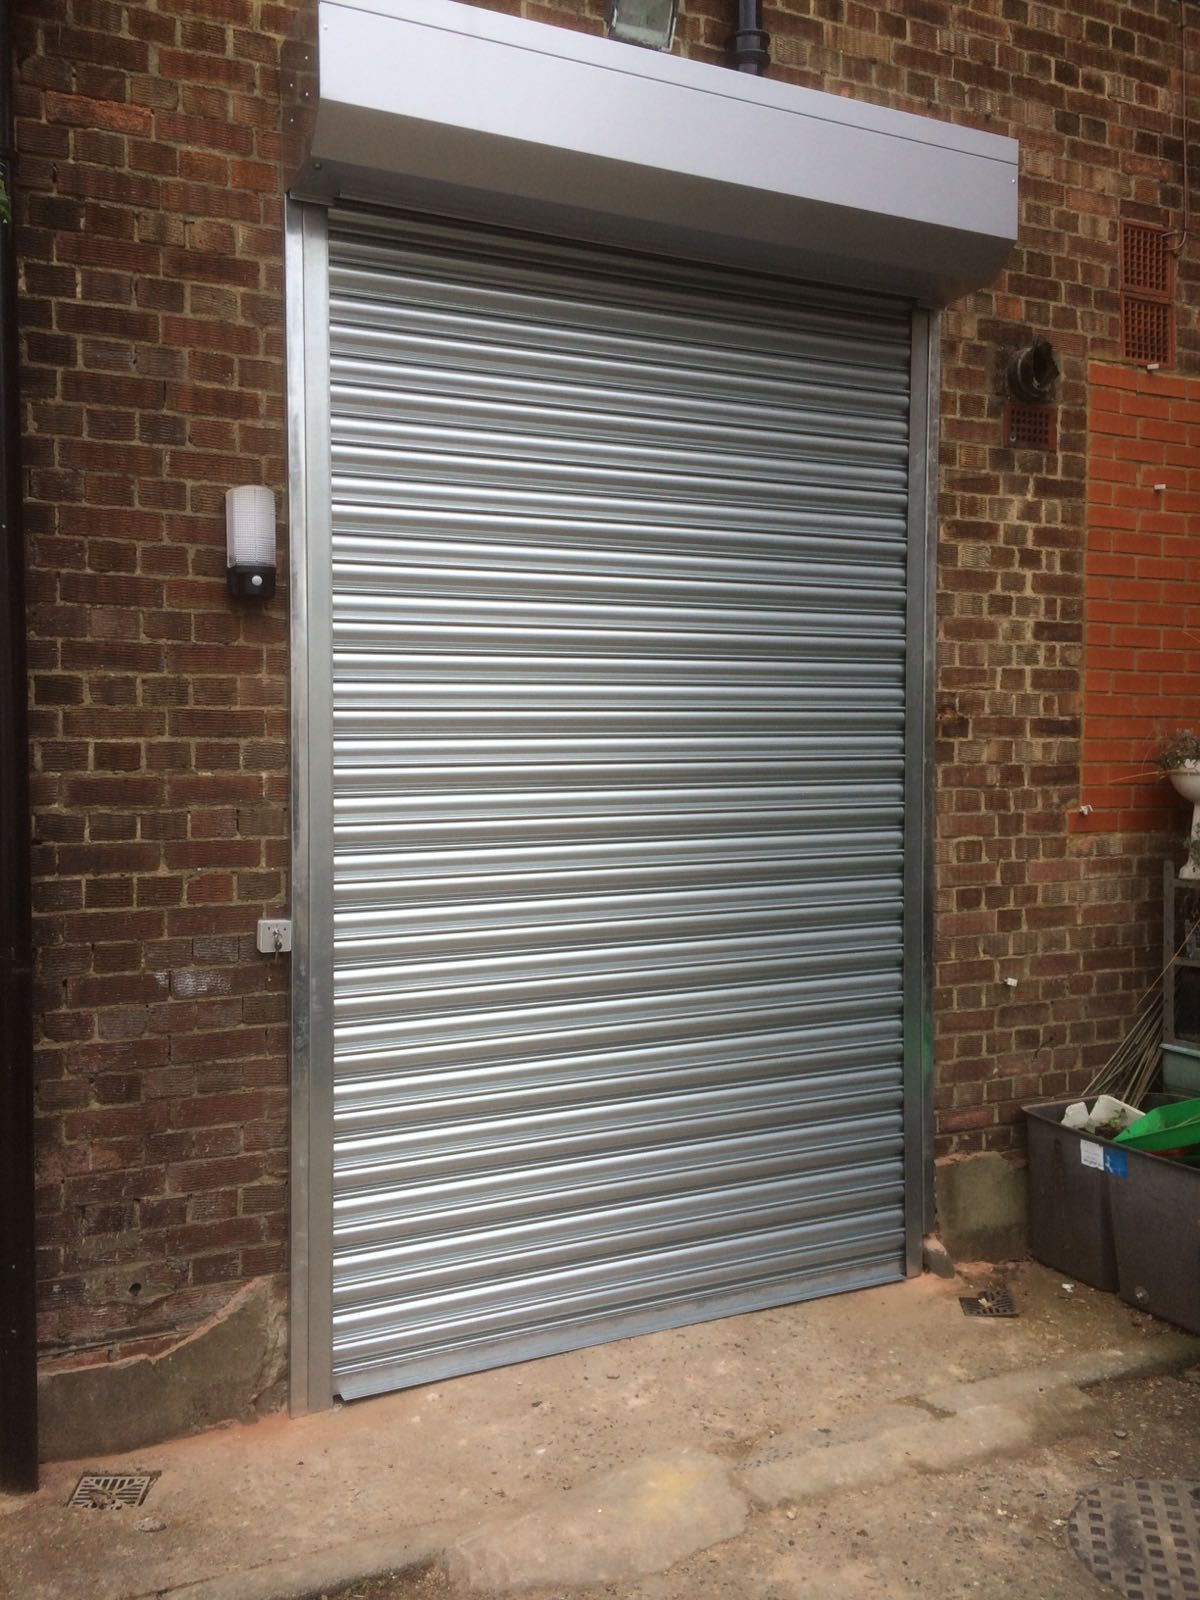 Our Rsg5000 Galvanised Roller Shutters Are Cost Effective And Great Way To Secure Your Business Premises Fitted Recent Roller Shutters Metal Shutters Shutters